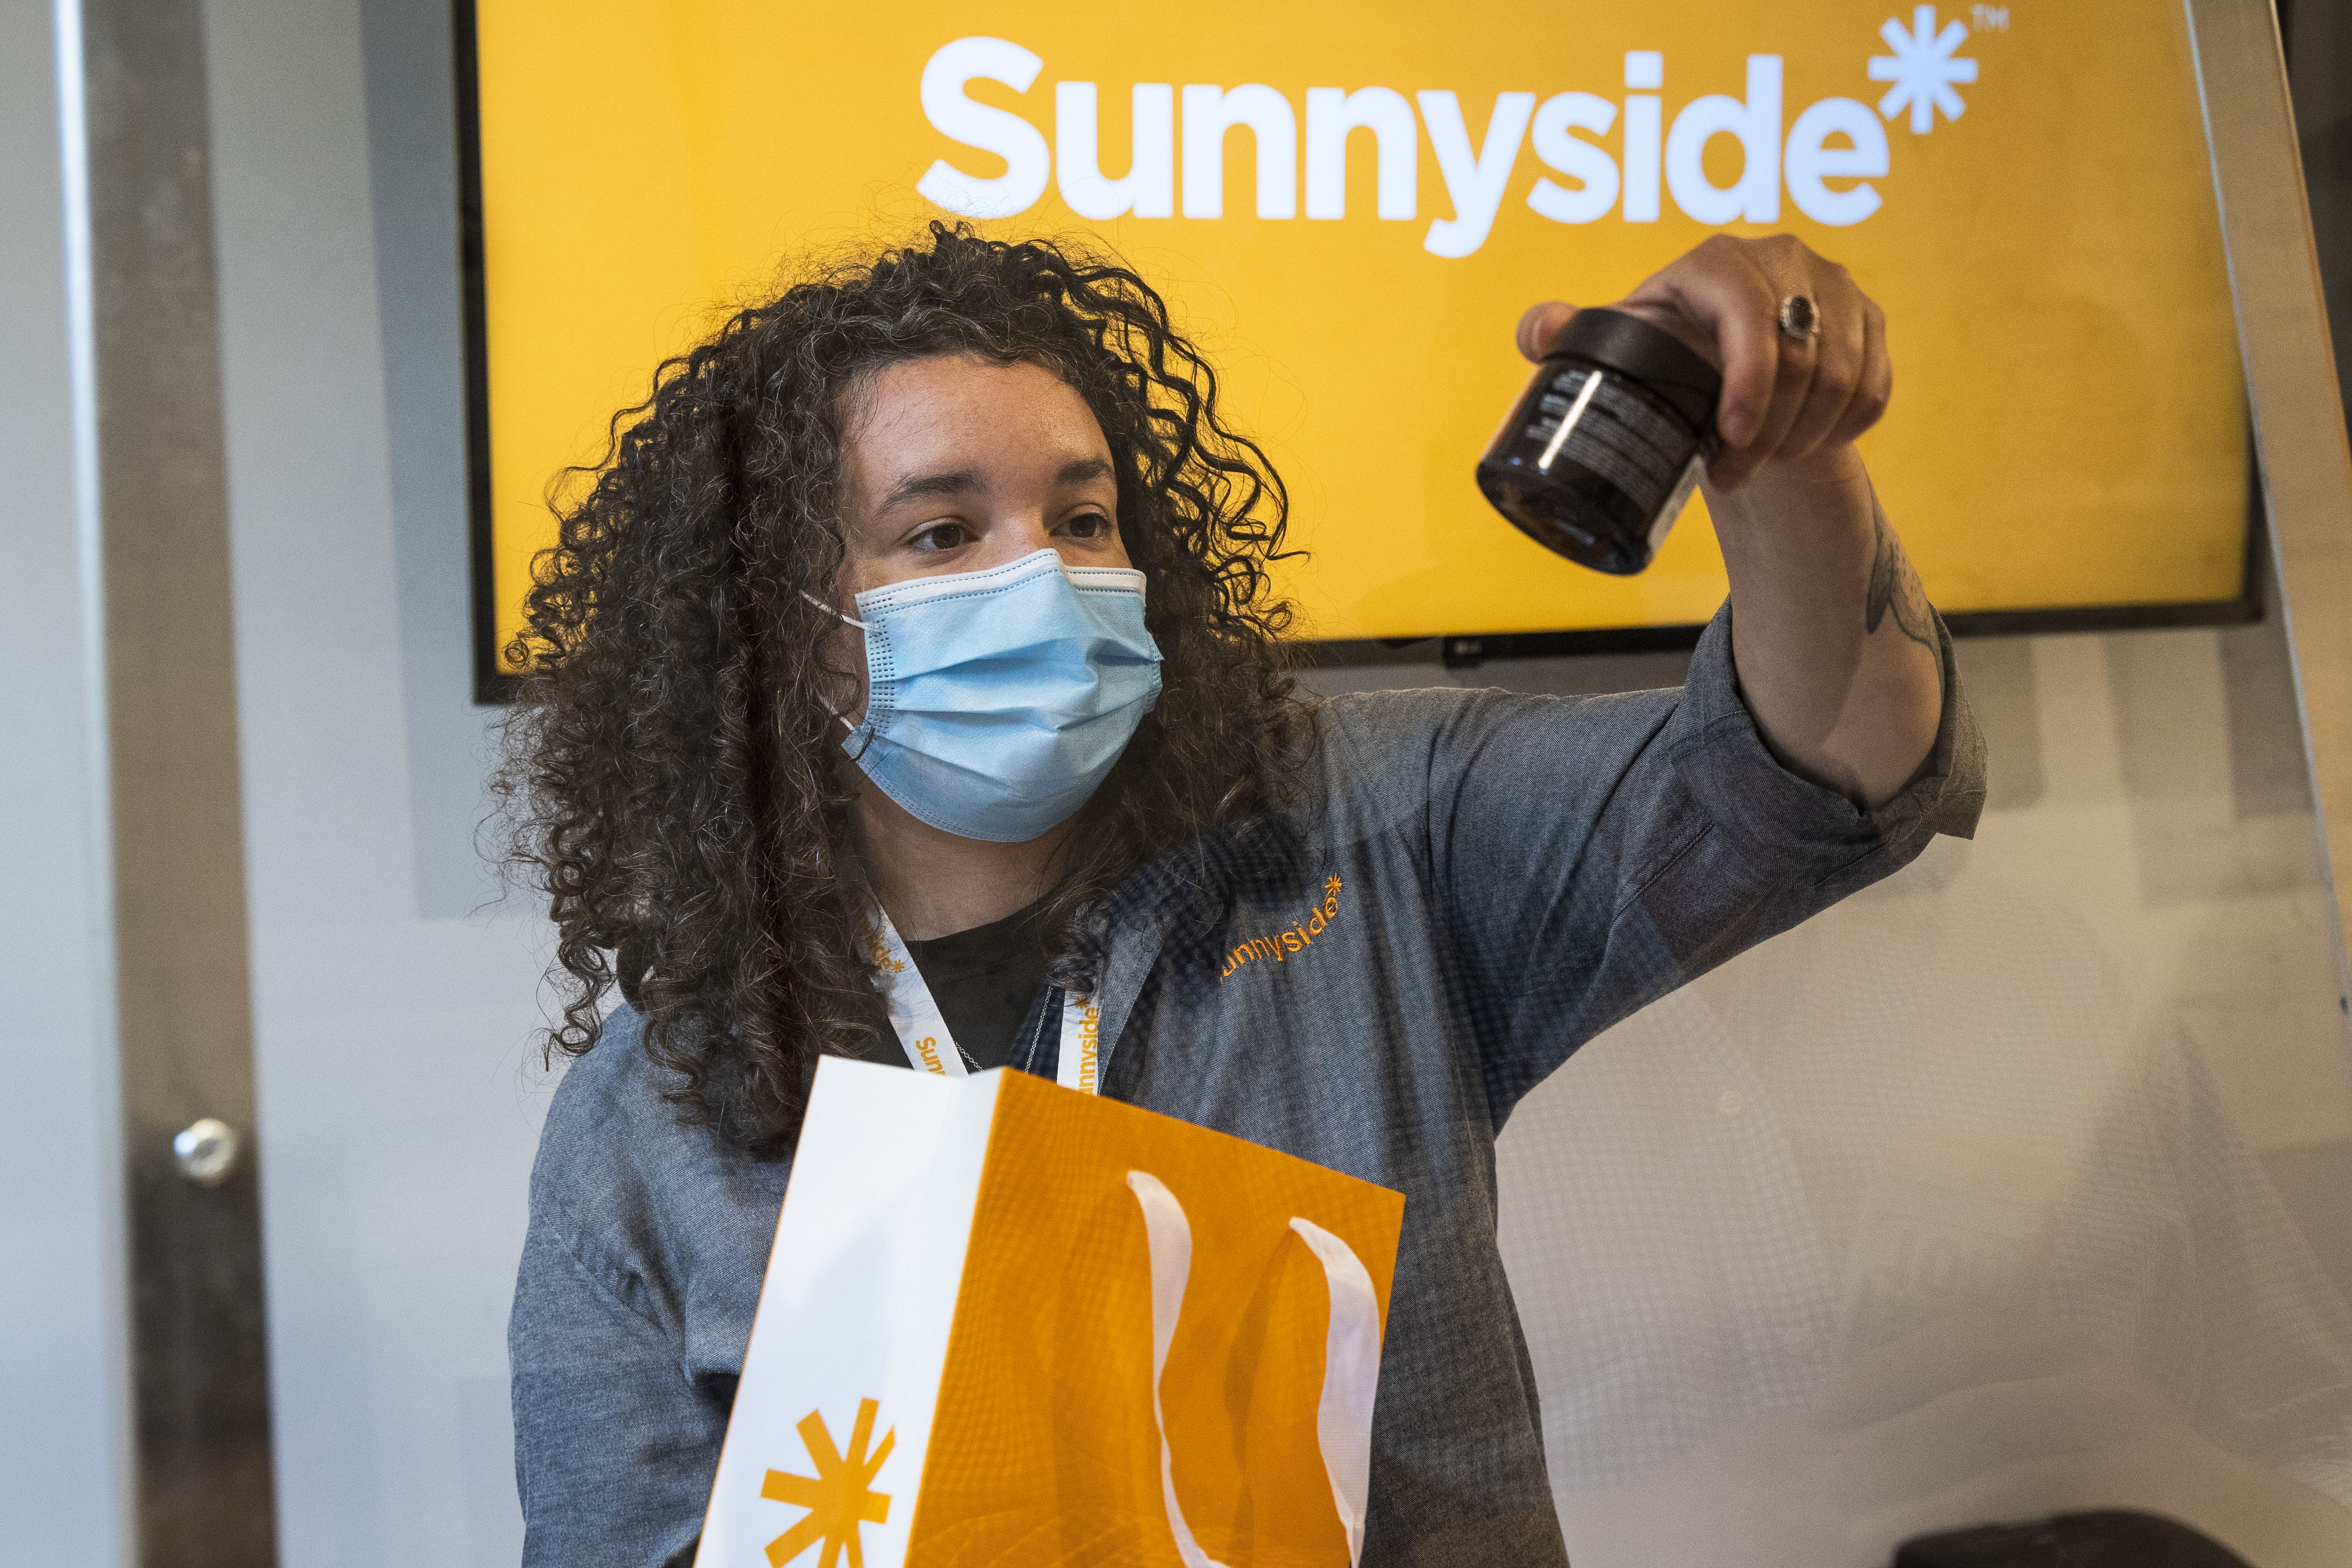 Jordan Davis, a wellness advisor, shows products to a 55-year-old man from River North as he makes the second purchase at Cresco Labs' seventh Sunnyside dispensary at 436 N. Clark St. on the store's opening day in River North, Thursday morning, May 28, 2020.